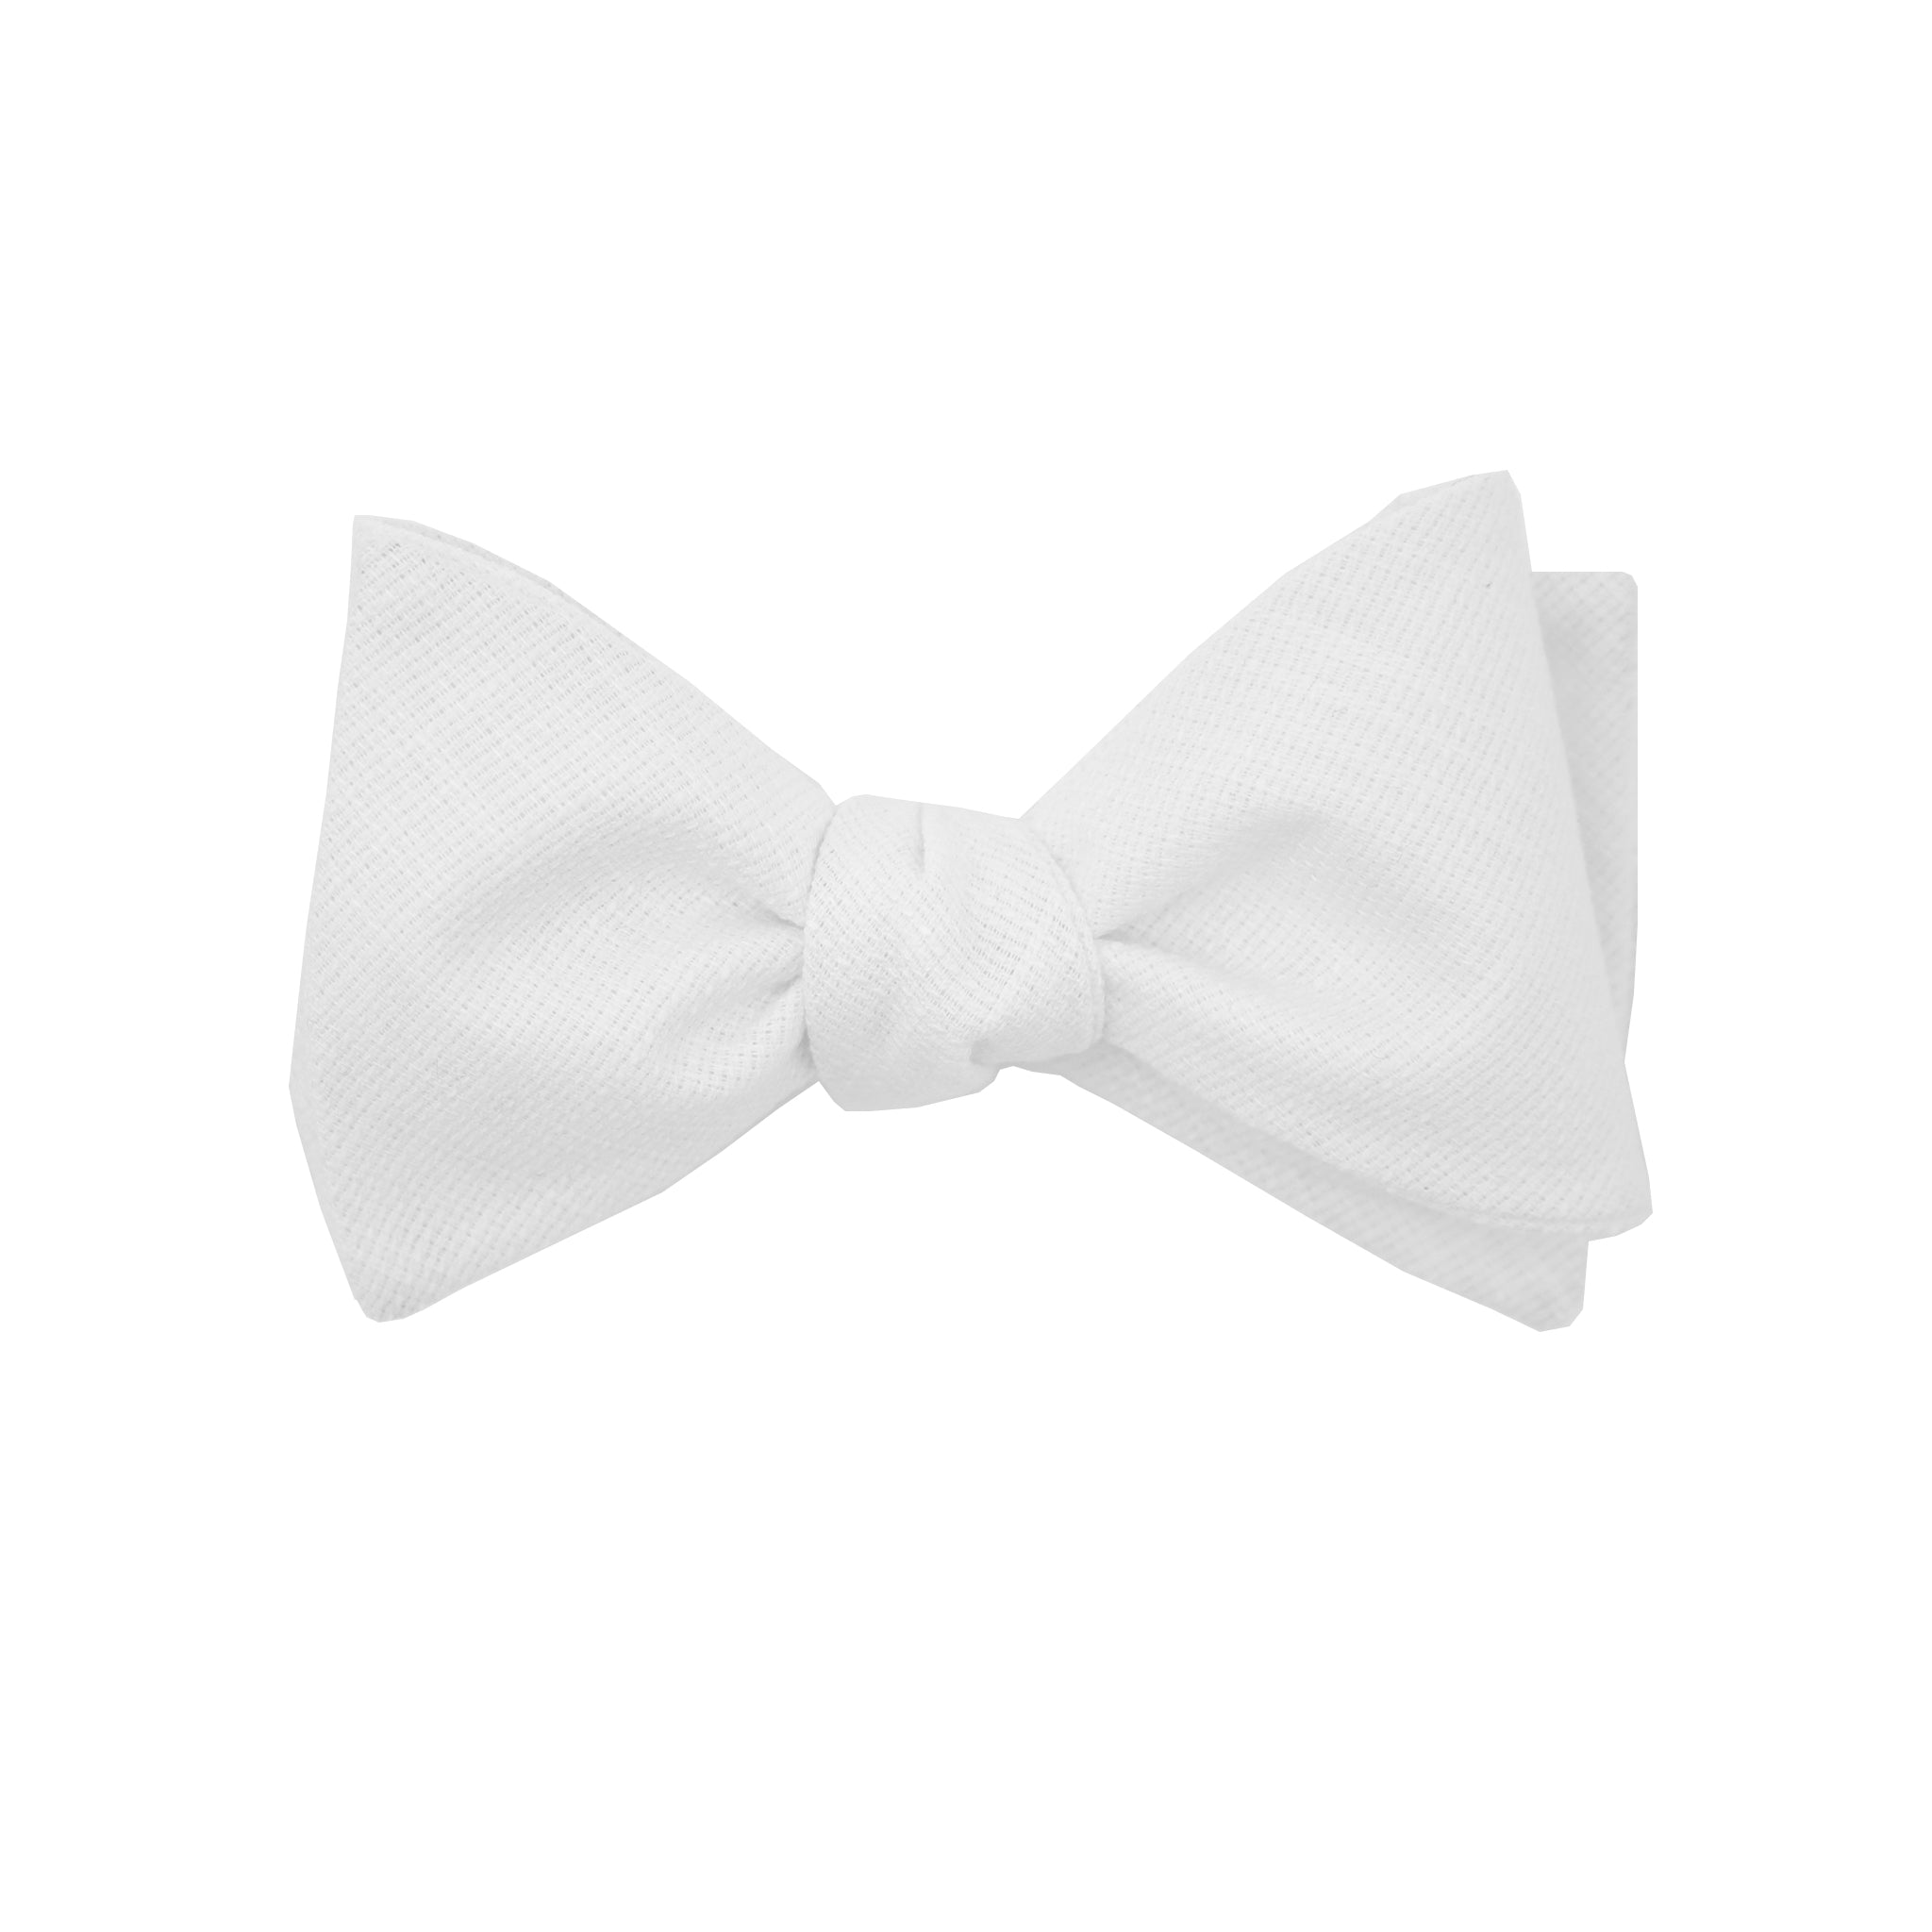 White Self Tie Bow Tie